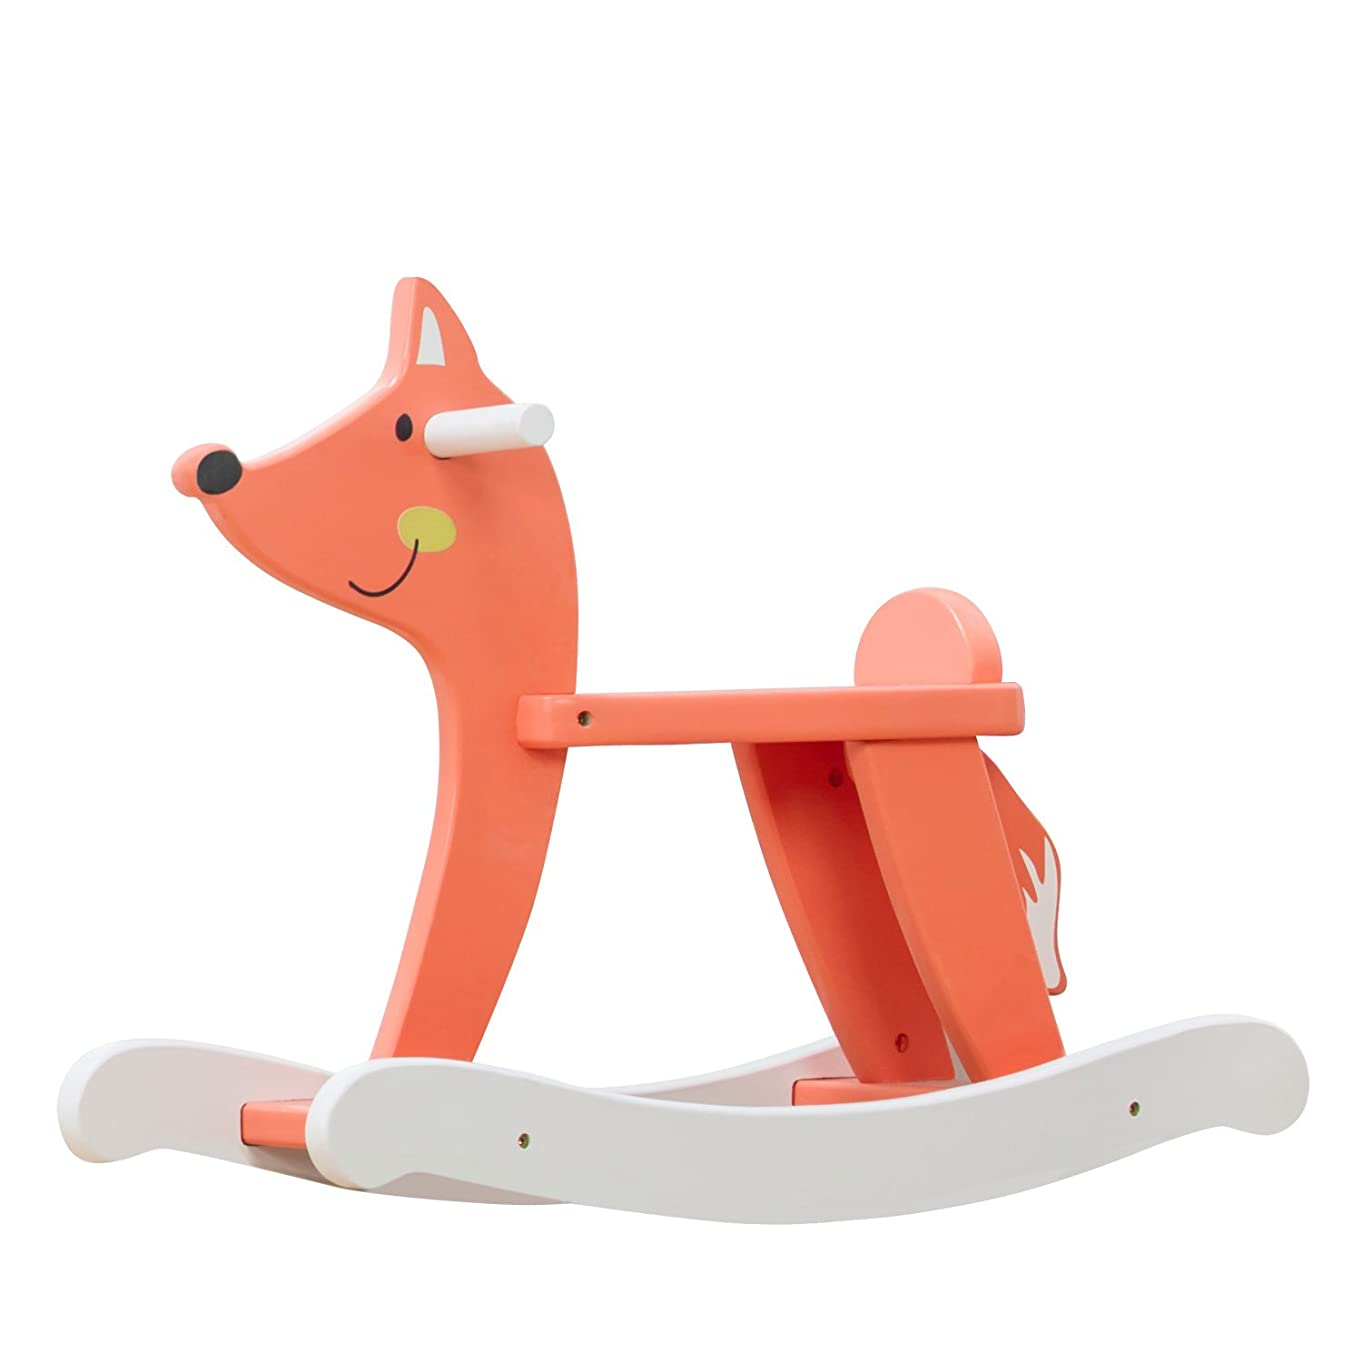 labebe - Baby Rocking Horse, Wooden Fox Rocker for 1-3 Year Old, Kid Rocking Animal for Infant Boy&Girl, Toddler/Child Ride On Toy, Nursery Fox Rocking Chair for Outdoor&Indoor, Birthday Gift - Orange